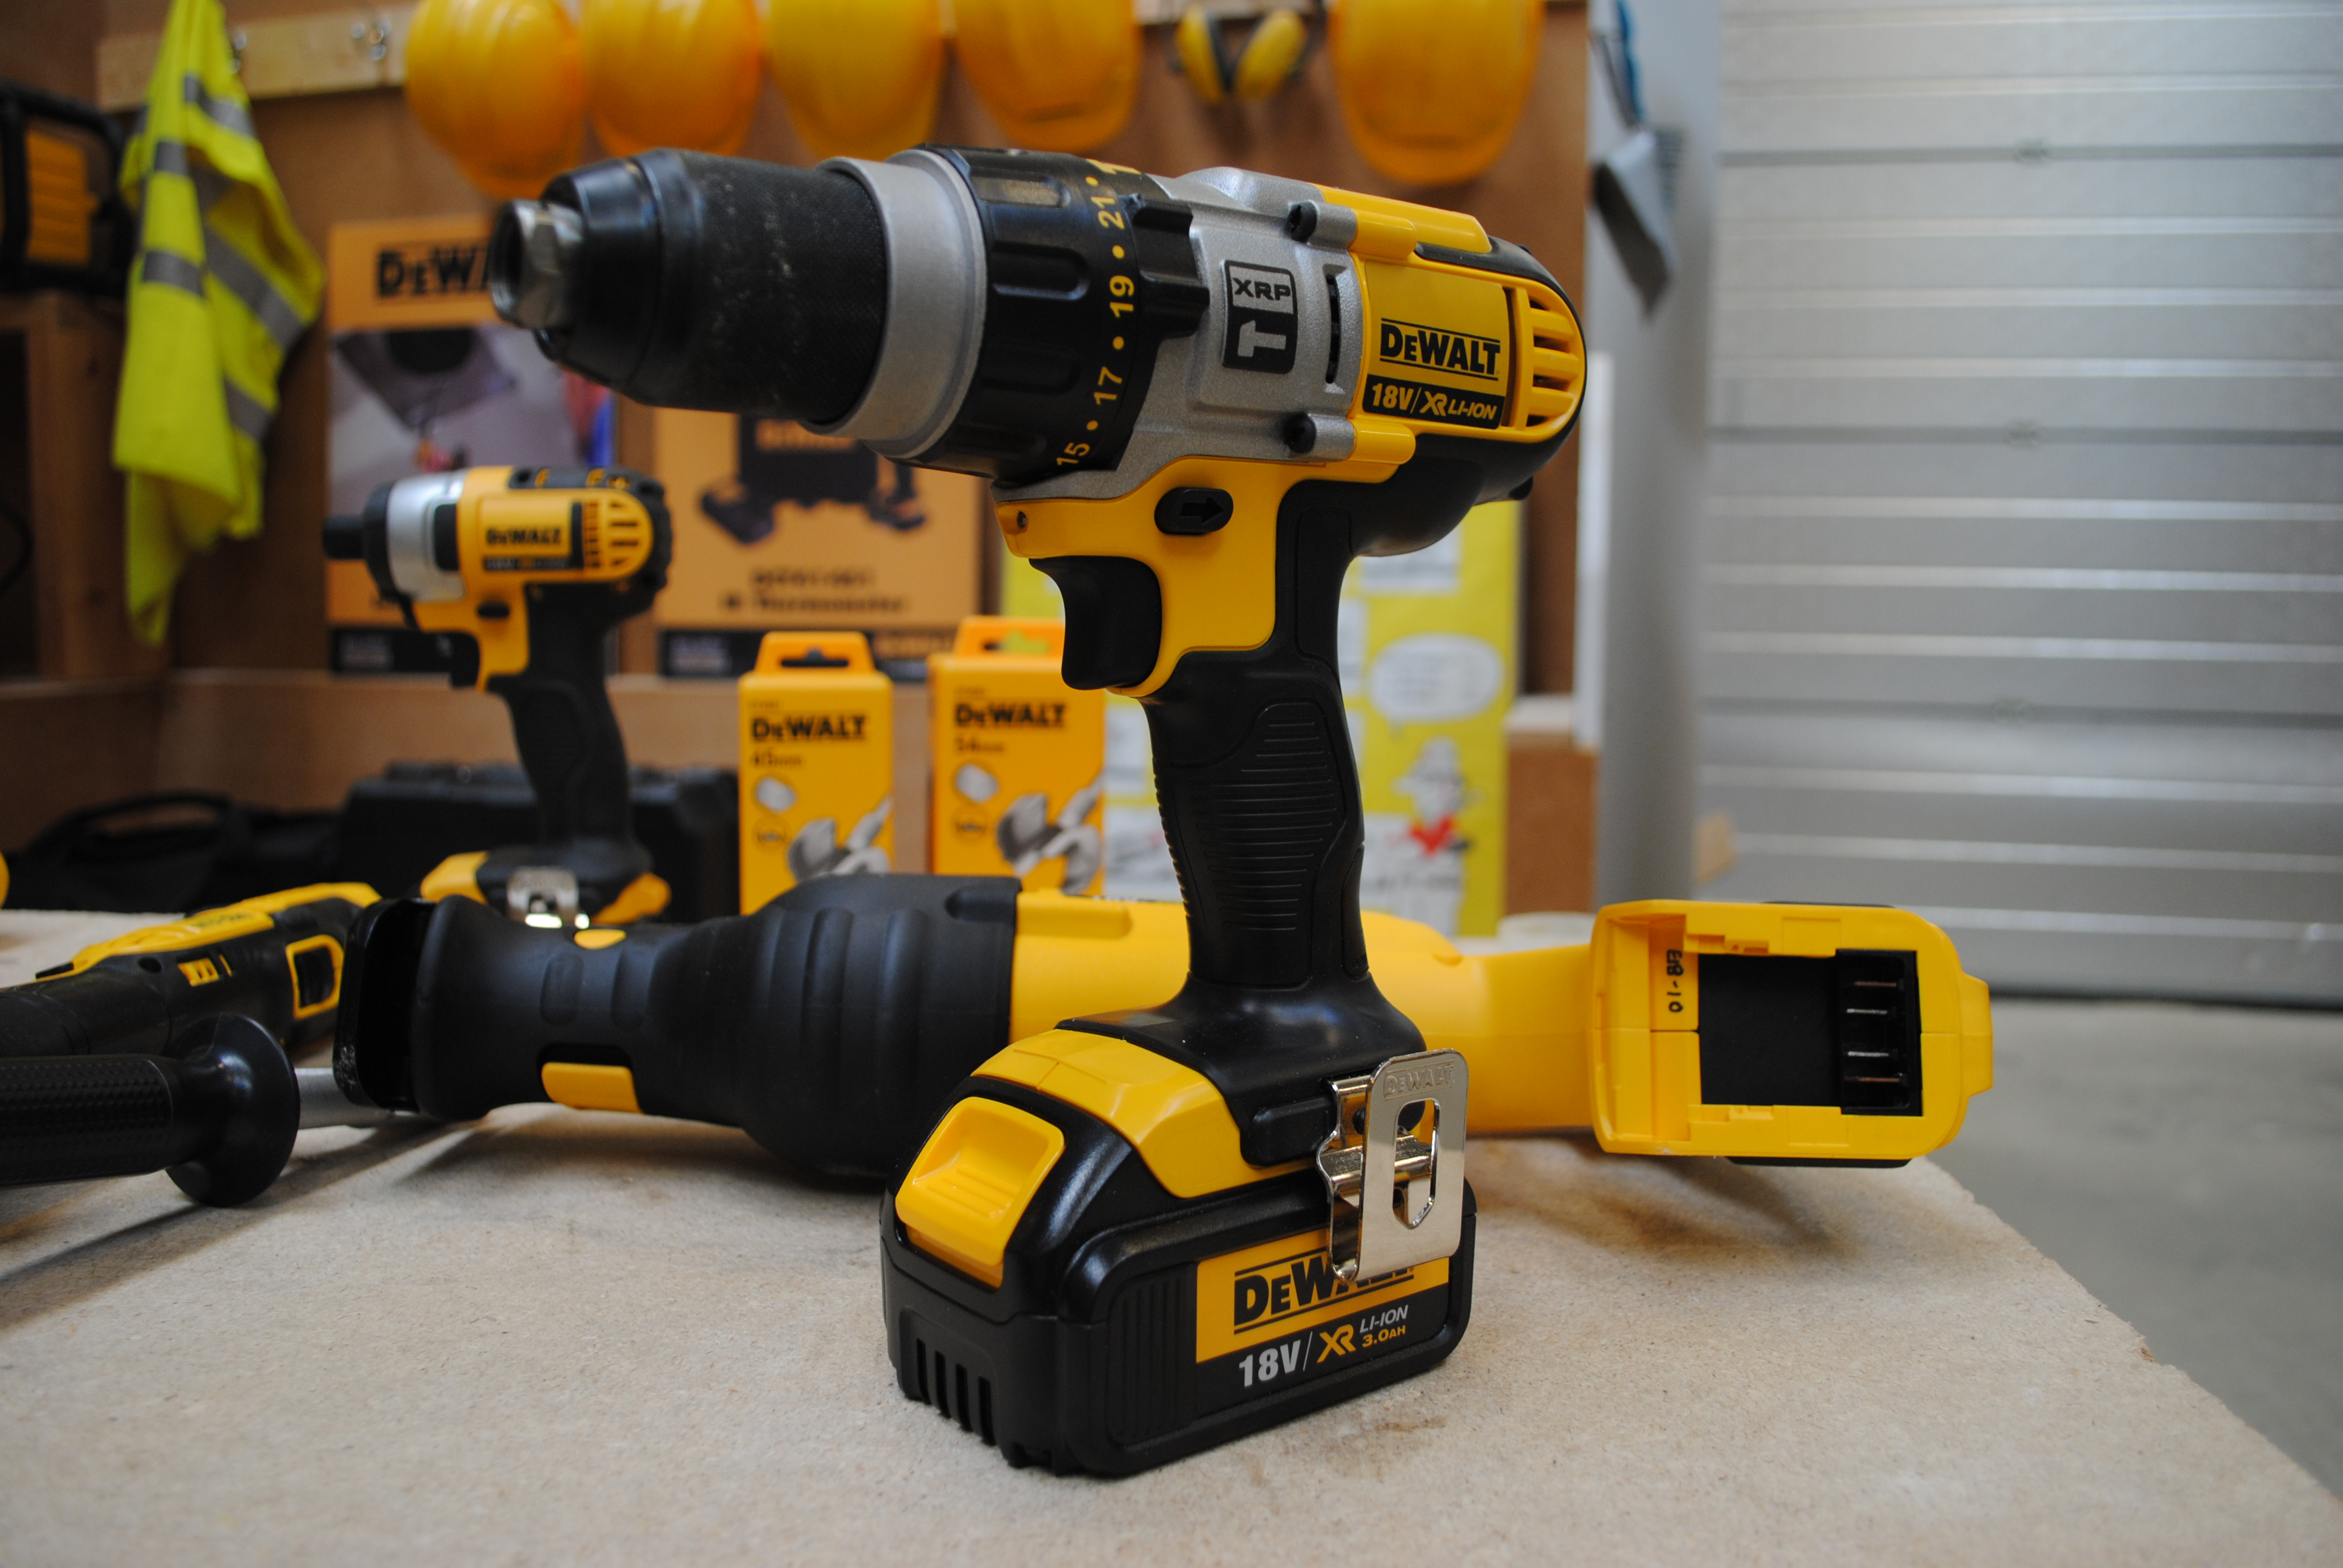 An in depth review of the best cordless drills in 2018